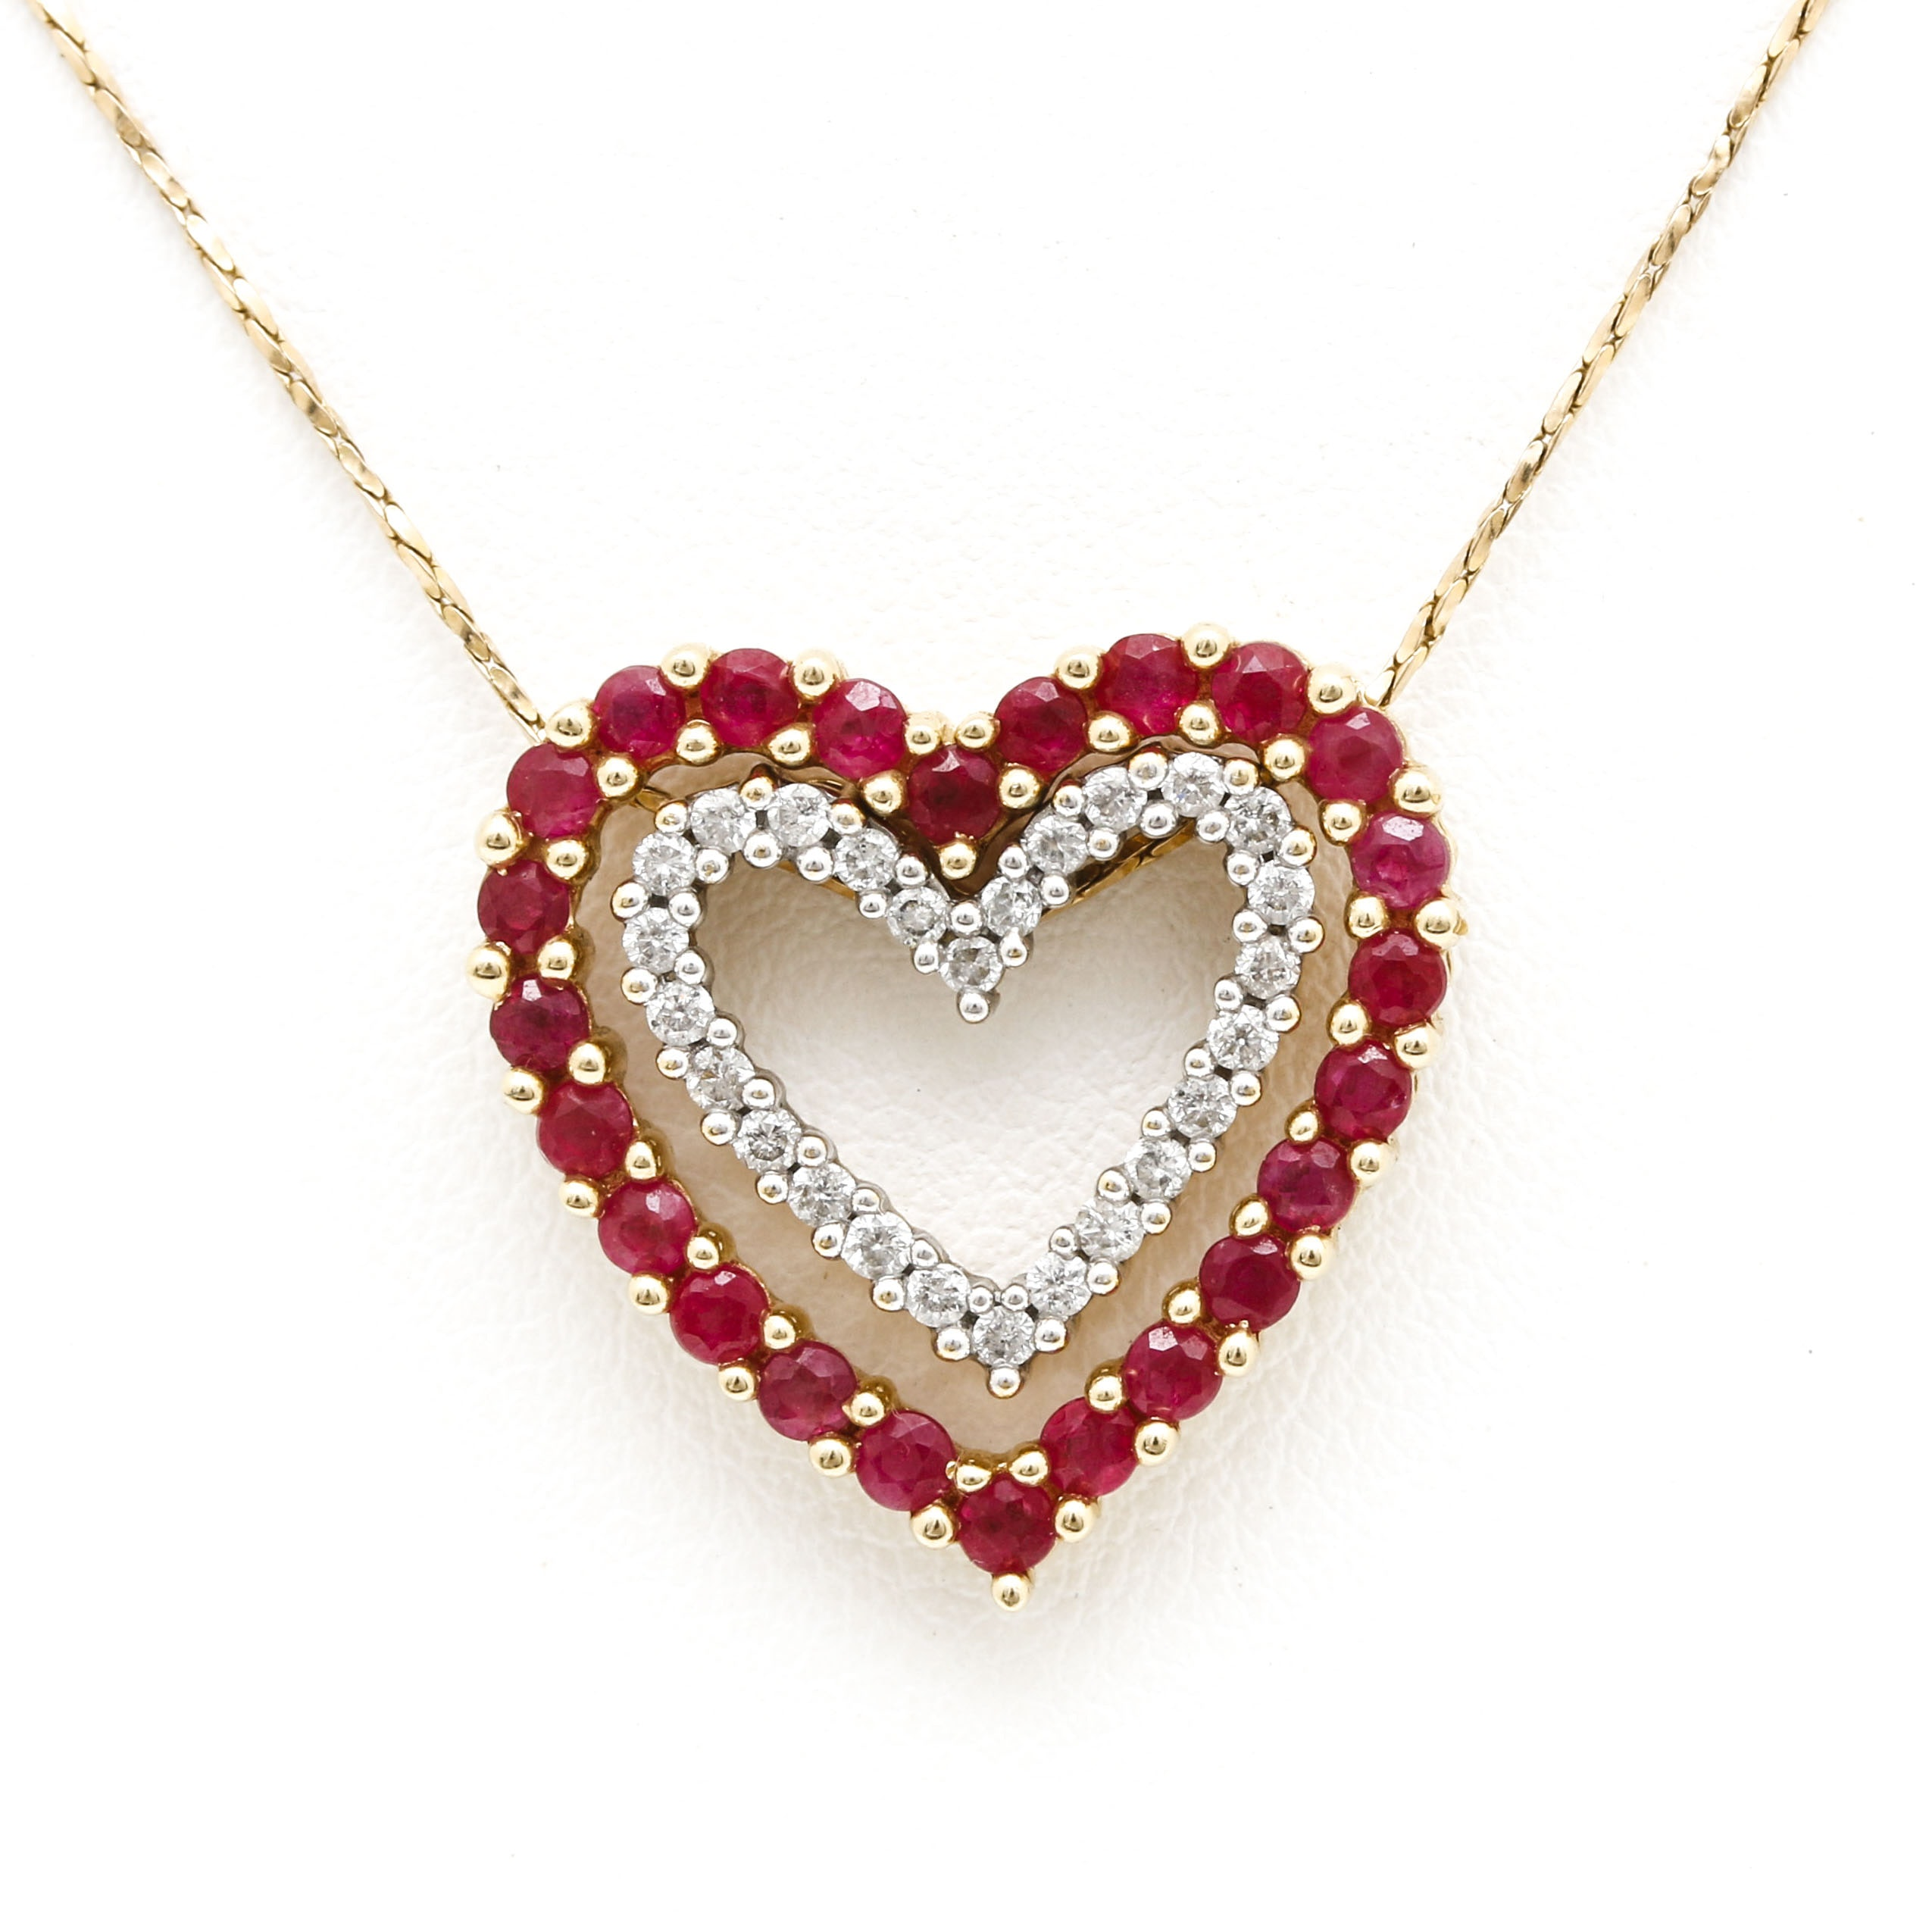 10K and 14K Yellow Gold Necklace with Ruby and Diamond Double Heart Pendants